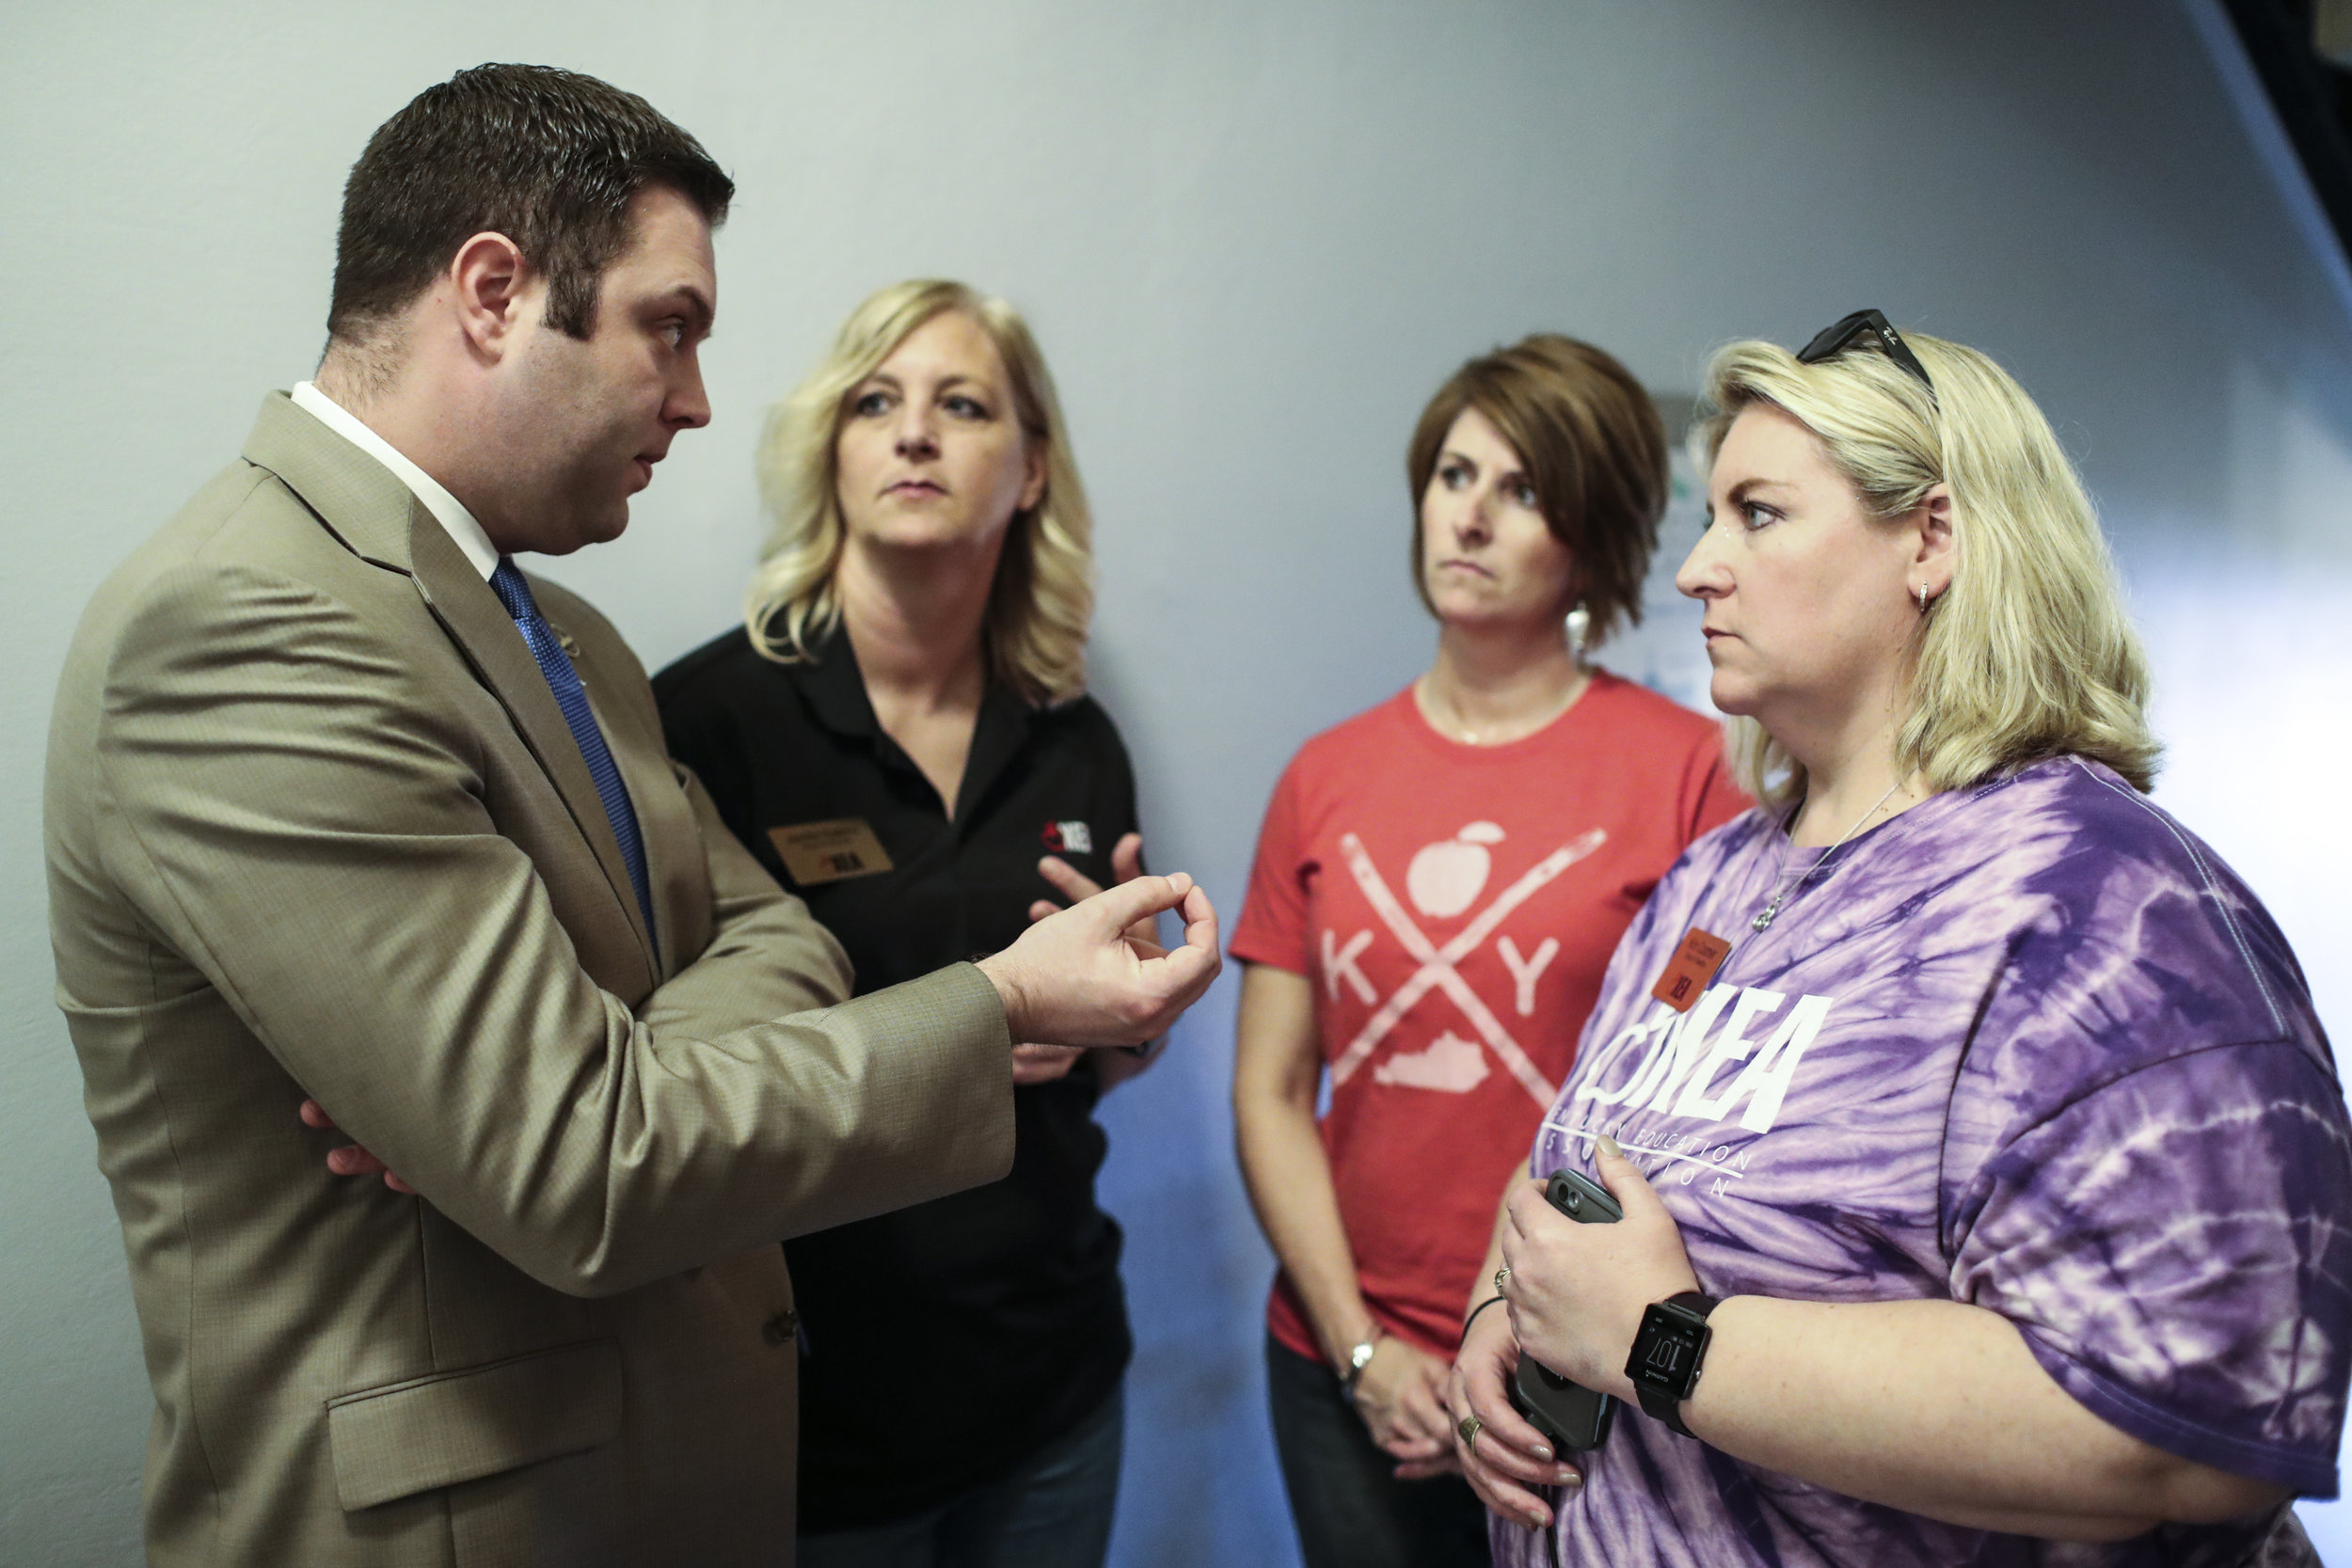 From right, Kim Coomer, Career Specialist at Warren County ATC, Kelley Ross, AP English teacher at Barren County High School, and Jennifer Hawkins, preschool teacher at Cumberland Trace Elementary School talk to state Rep. Michael Meredith, R-Brownsville, on Friday, April 13, 2018, at the Kentucky State Capitol.